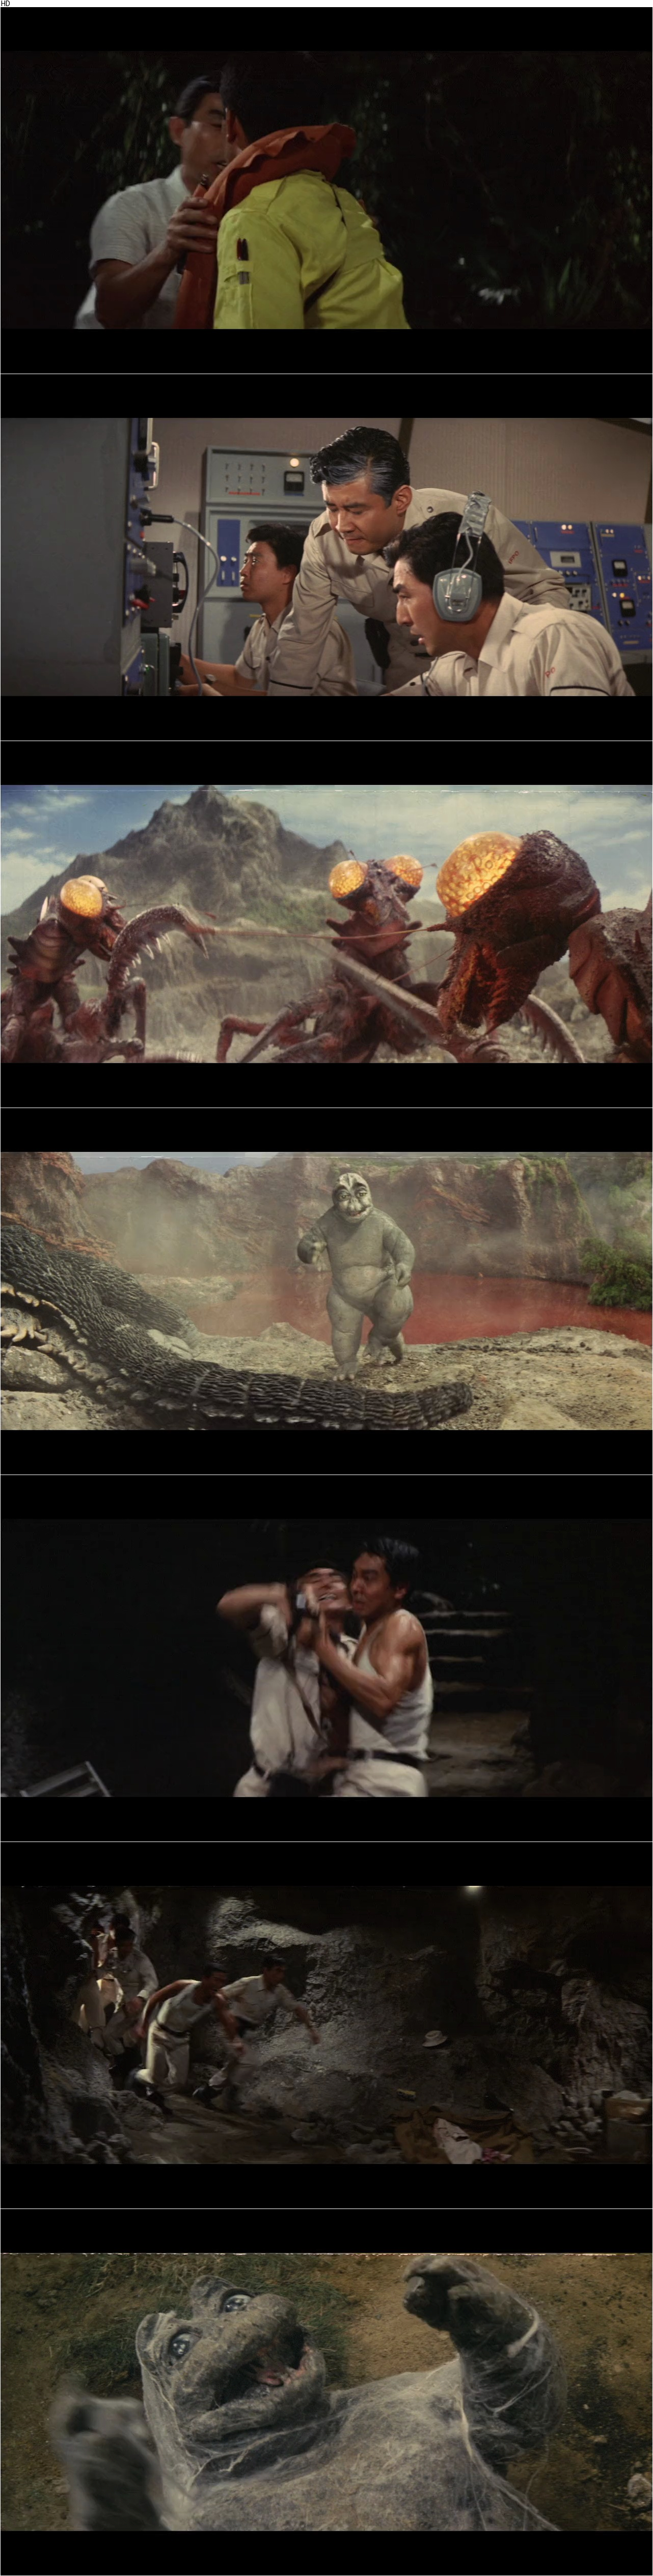 Son of Godzilla (1967) [The Criterion Collection]